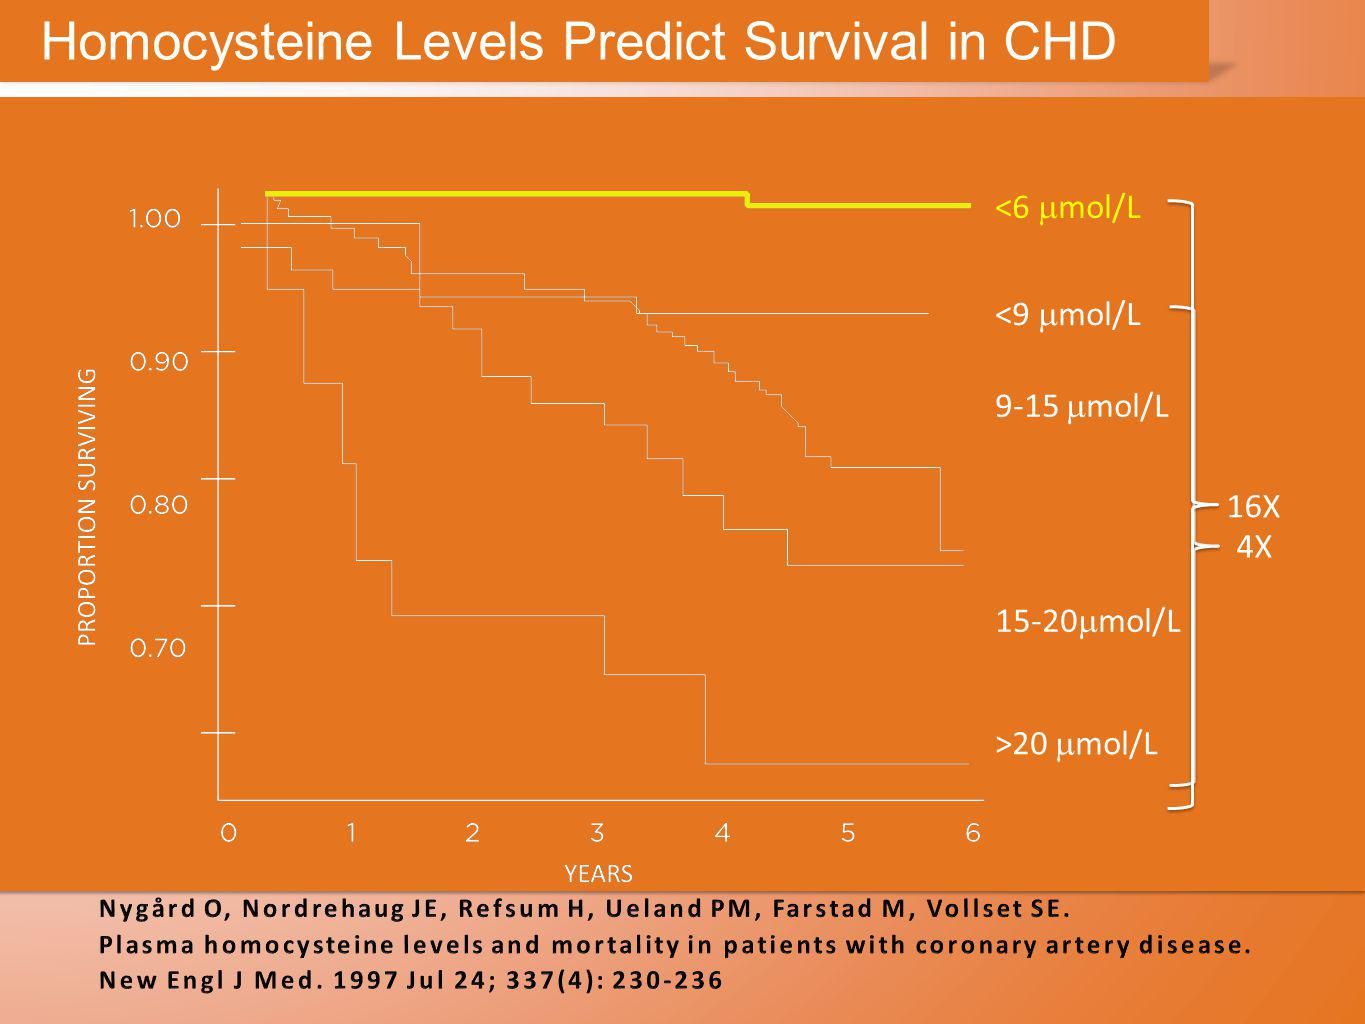 Homocysteine Levels Predict Survival in CHD <6  mol/L <9  mol/L 9-15  mol/L 15-20  mol/L >20  mol/L 4X 16X